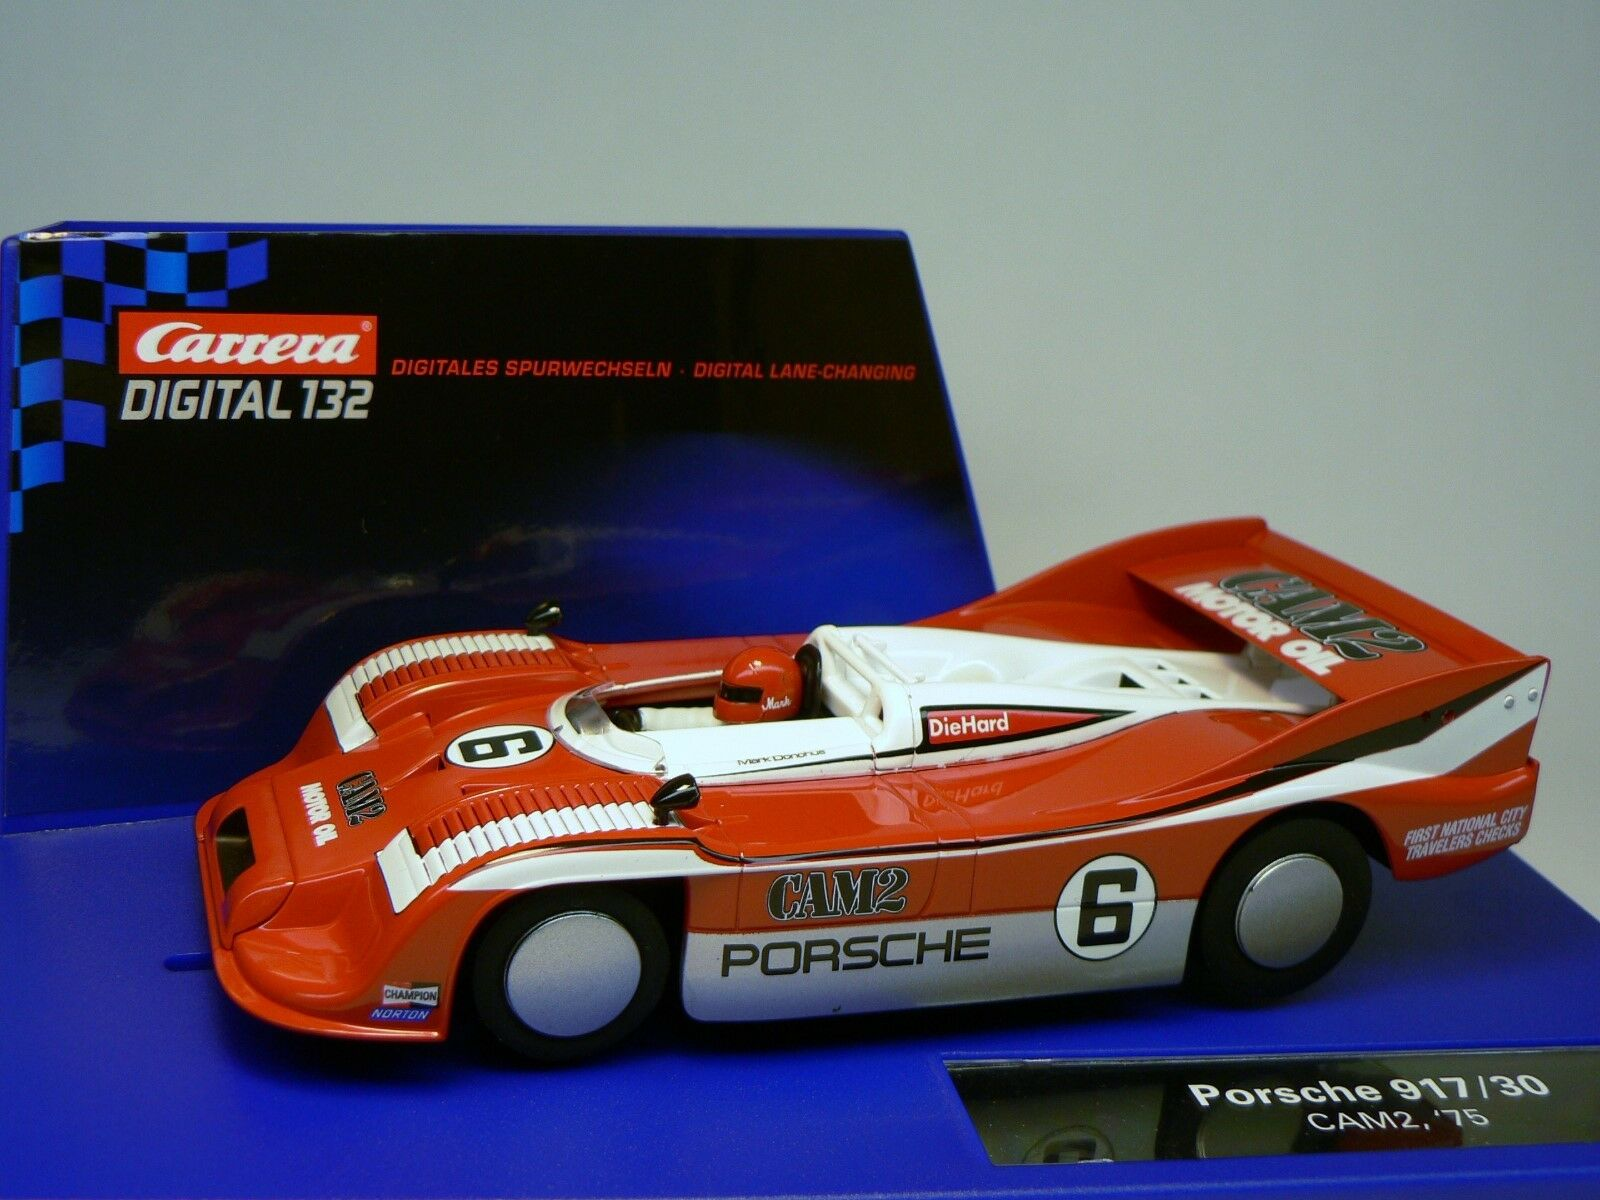 Carrera Digital 132 30522 Porsche 917 30 Cam2 `75 New